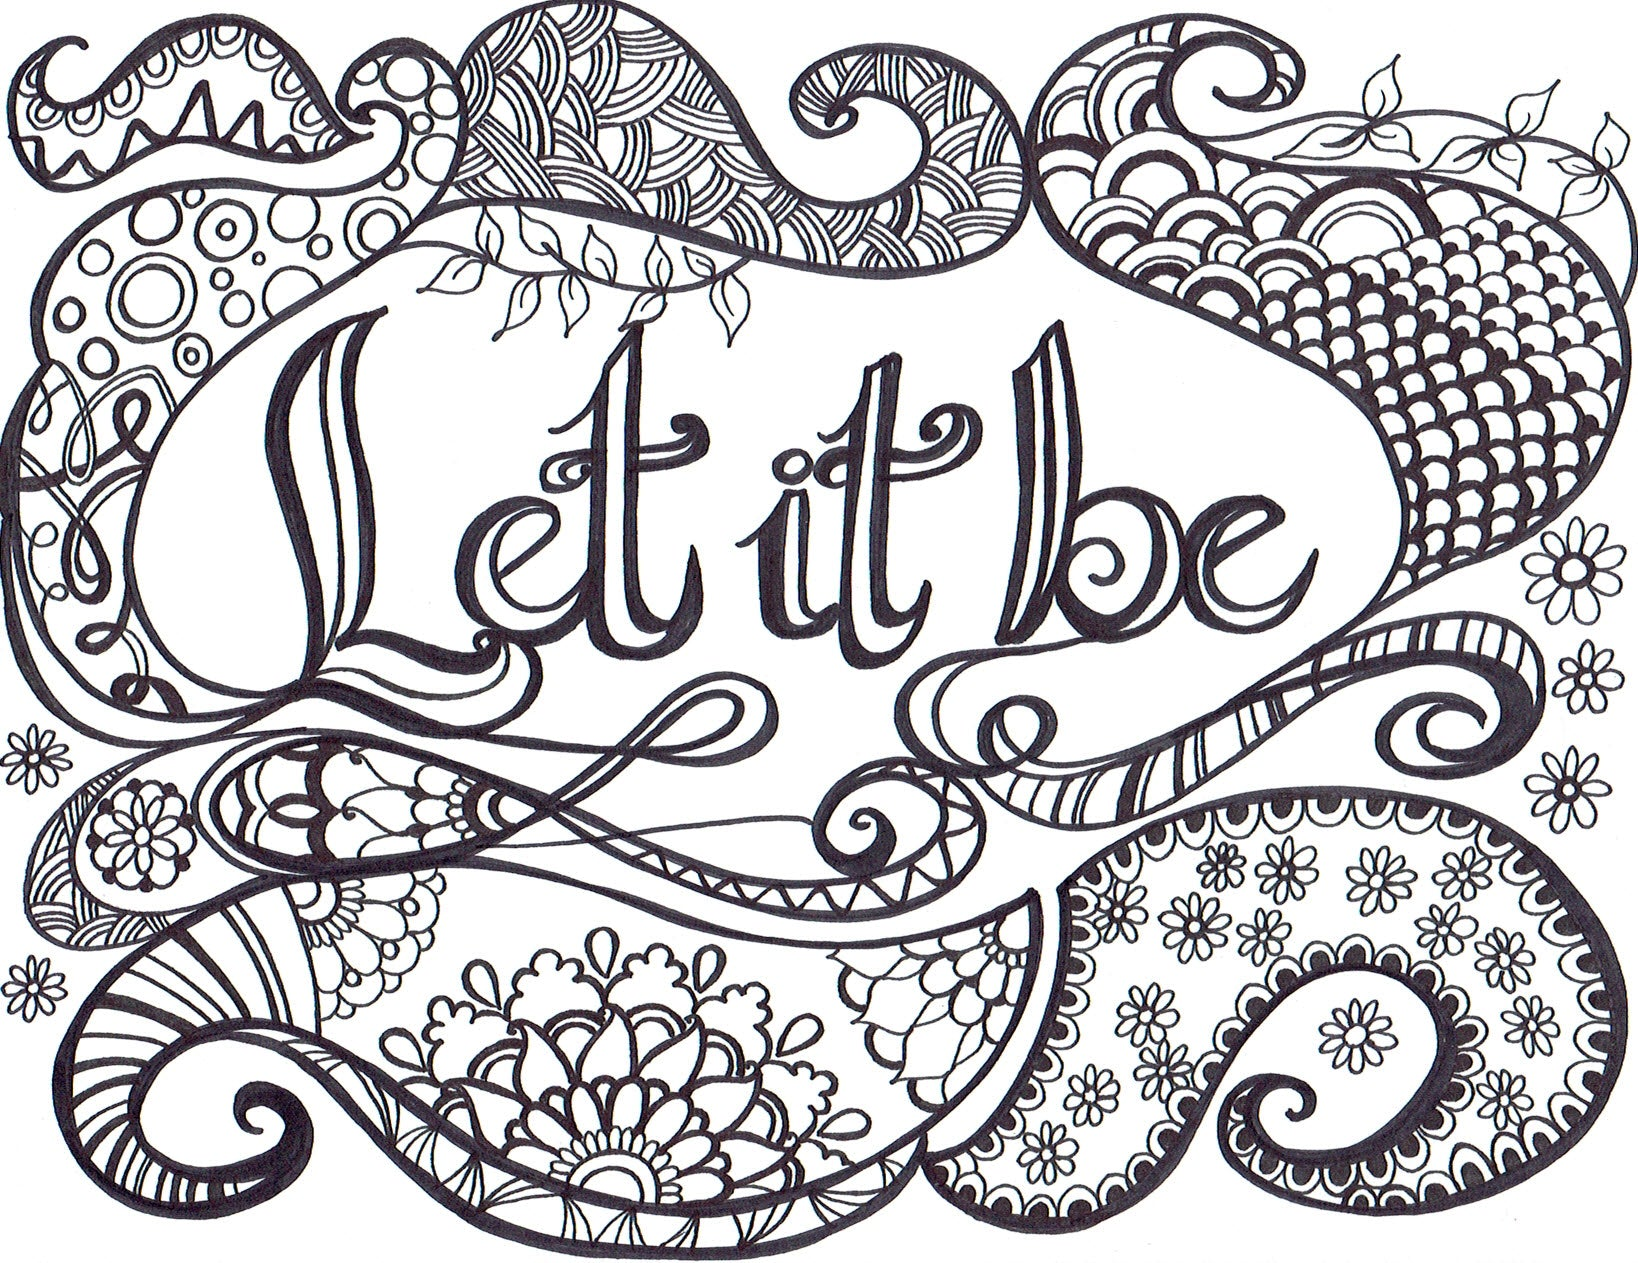 Let It Be - Poster for Coloring - You-Color